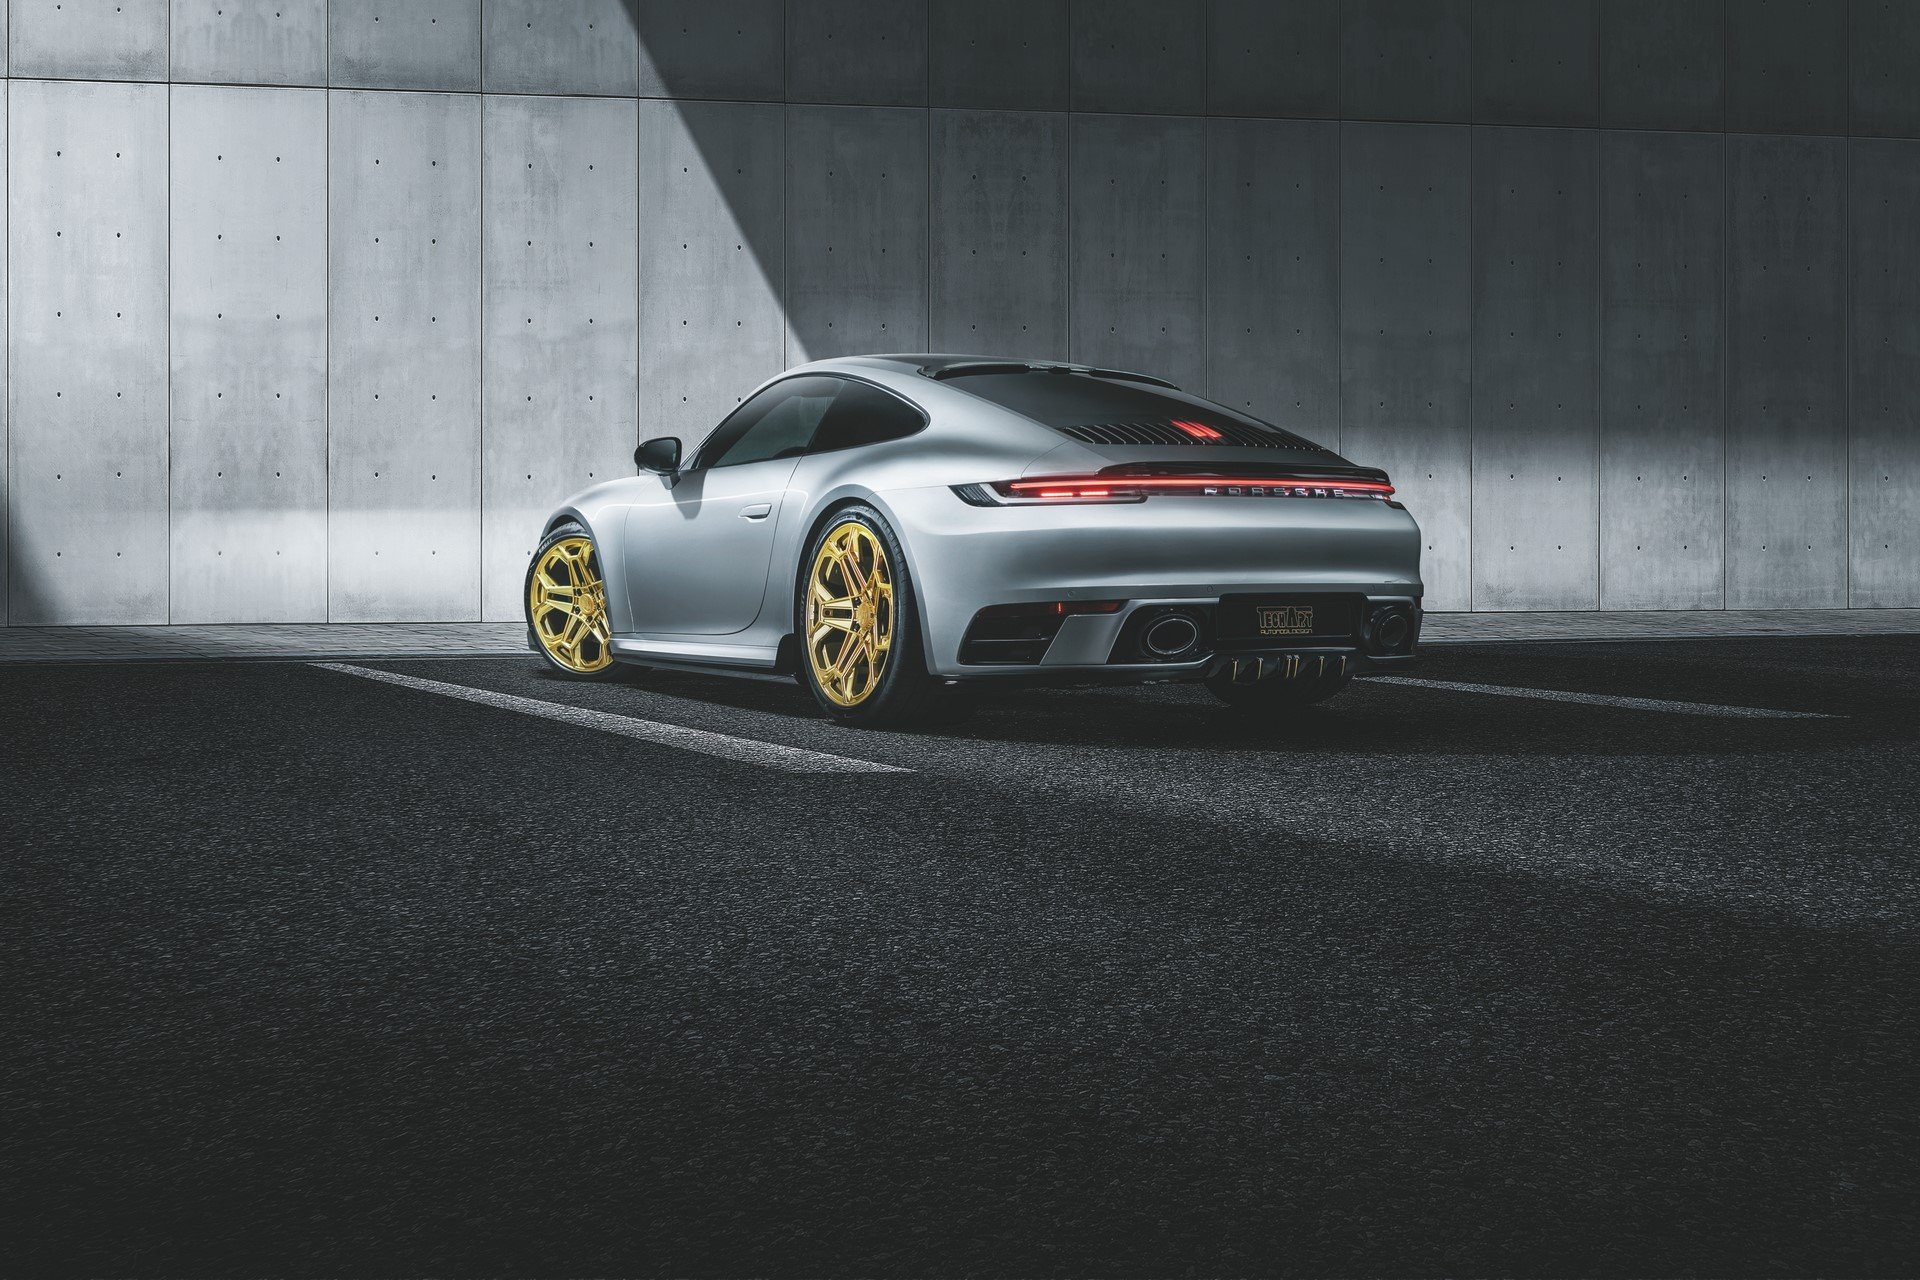 Porsche-911-Carrera-4S-by-TechArt-15